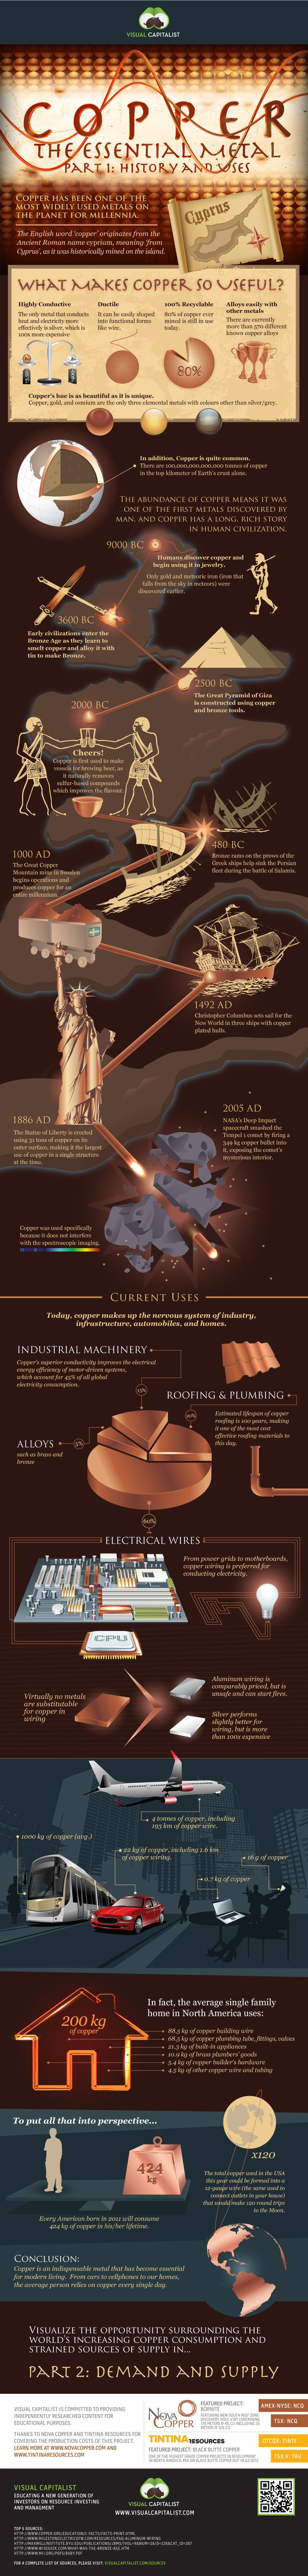 Copper the Essential Metal, Part 1: copper is one of the most widely used metals on the planet, and has been for more than 10,000 years. |via Nova Coppers